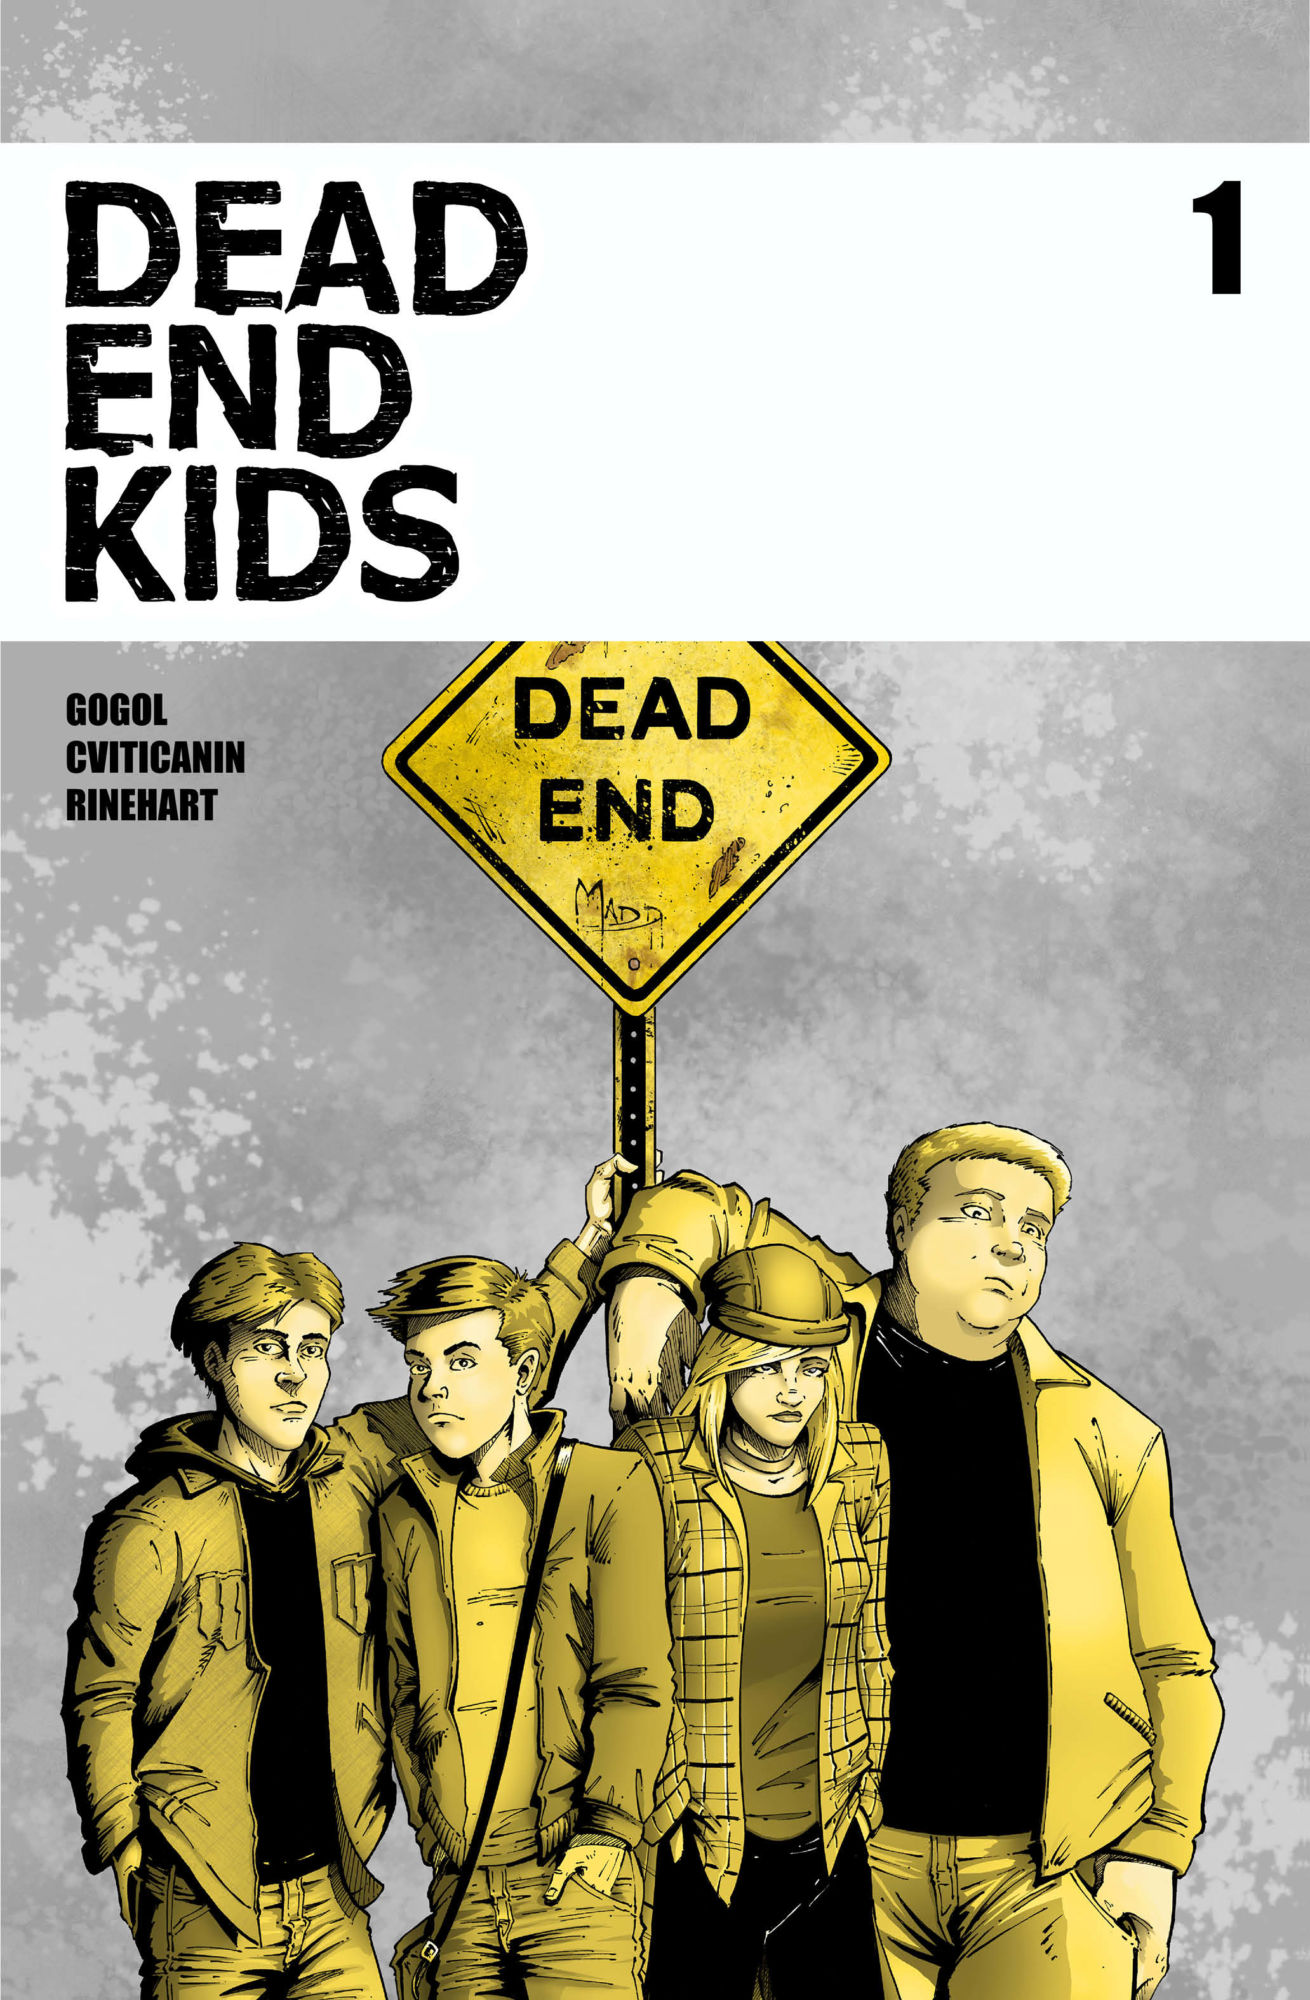 Dead End Kids #1 Goes to Second Print, #2 Sells Out Ahead of Release